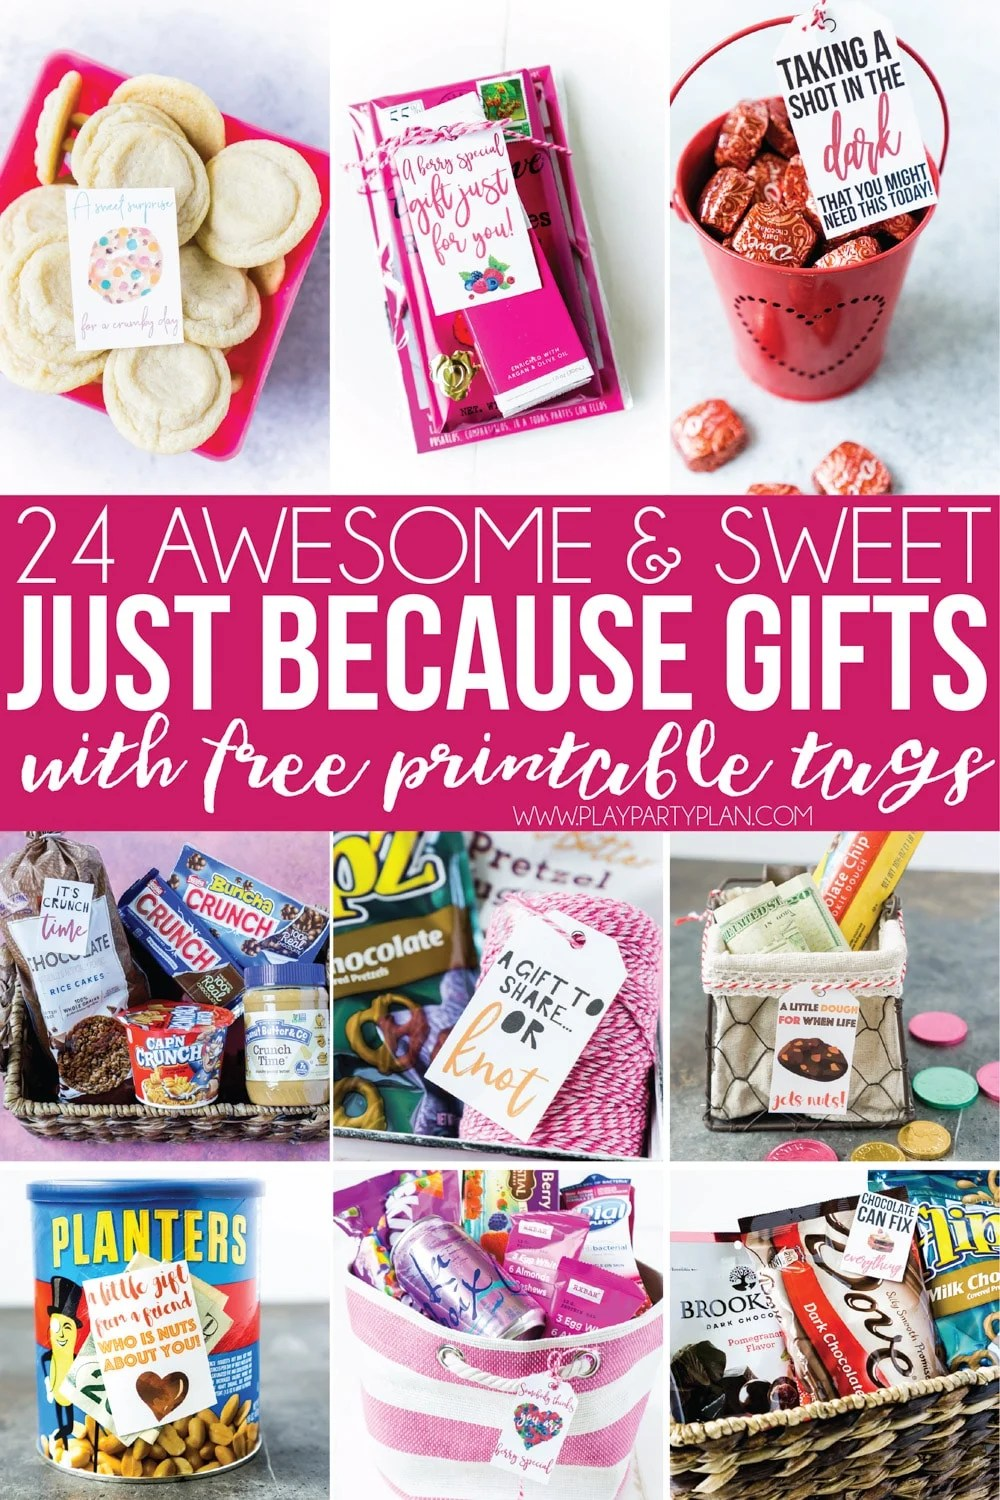 Just because no occasion gift ideas and free printable gift tags